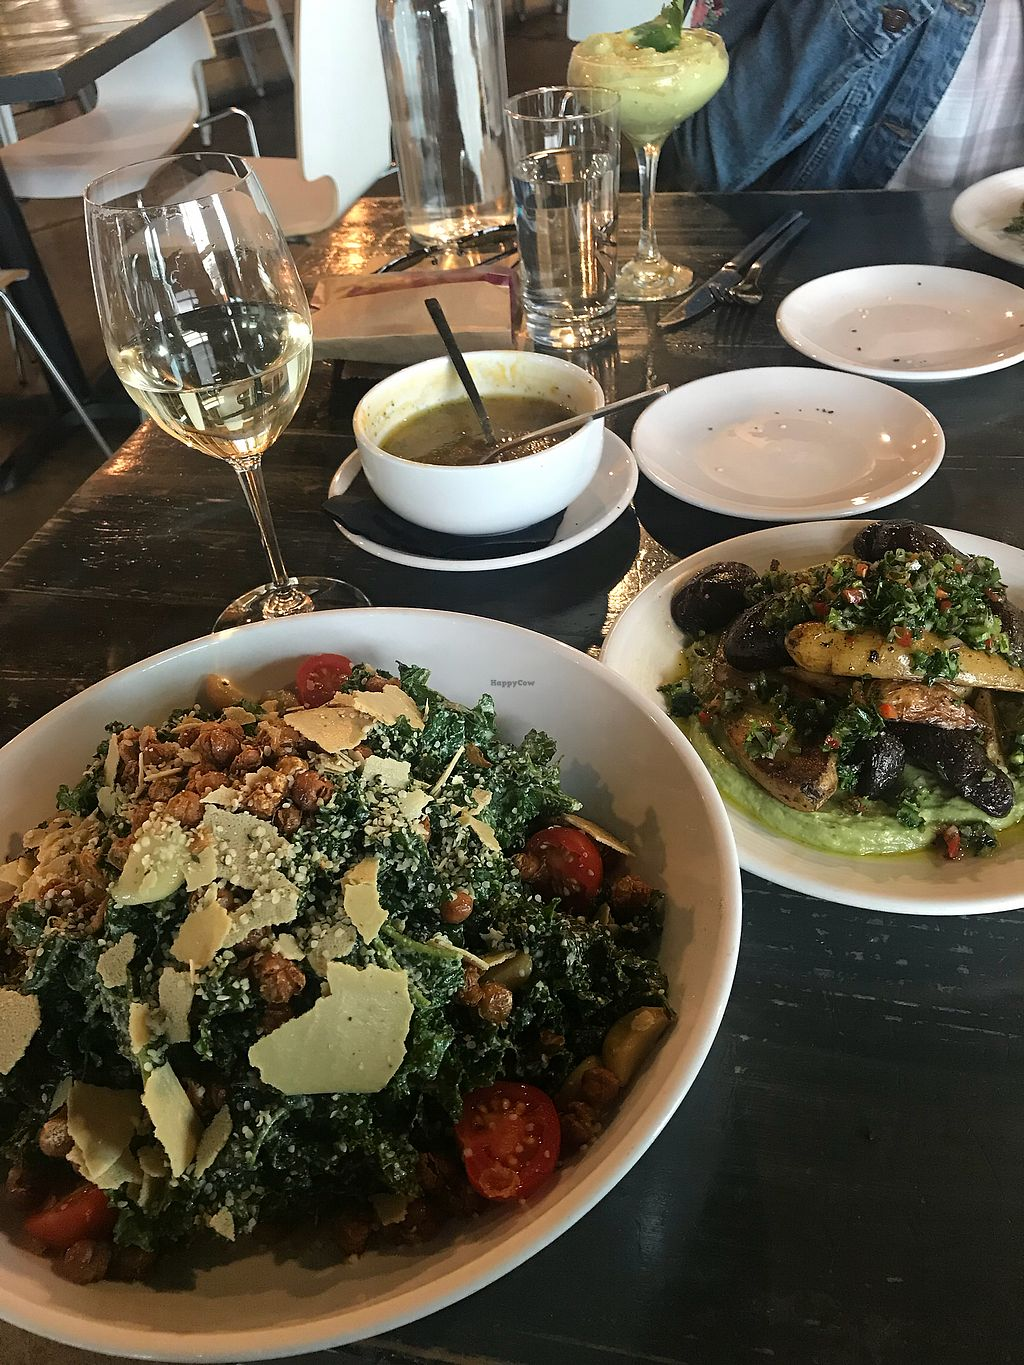 """Photo of Avo  by <a href=""""/members/profile/rachelurioste"""">rachelurioste</a> <br/>fingerlings potatoes & kale ceasar <br/> April 6, 2018  - <a href='/contact/abuse/image/49007/381386'>Report</a>"""